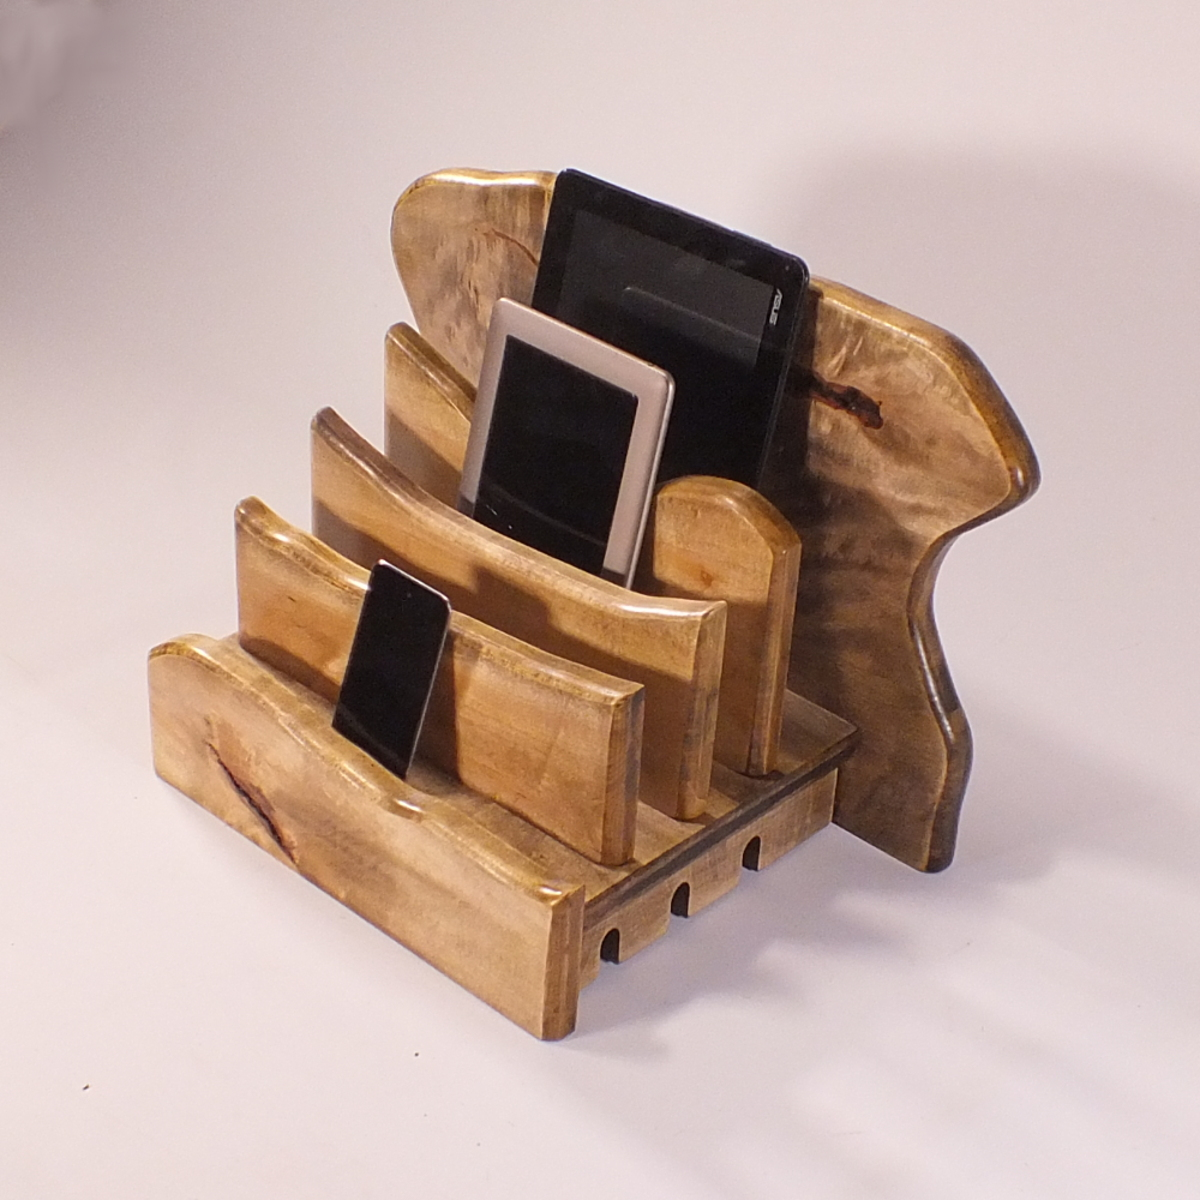 sq diag lite load Charging-Station-Wood-2-TBKN-M-OIL-2-16.Jpg